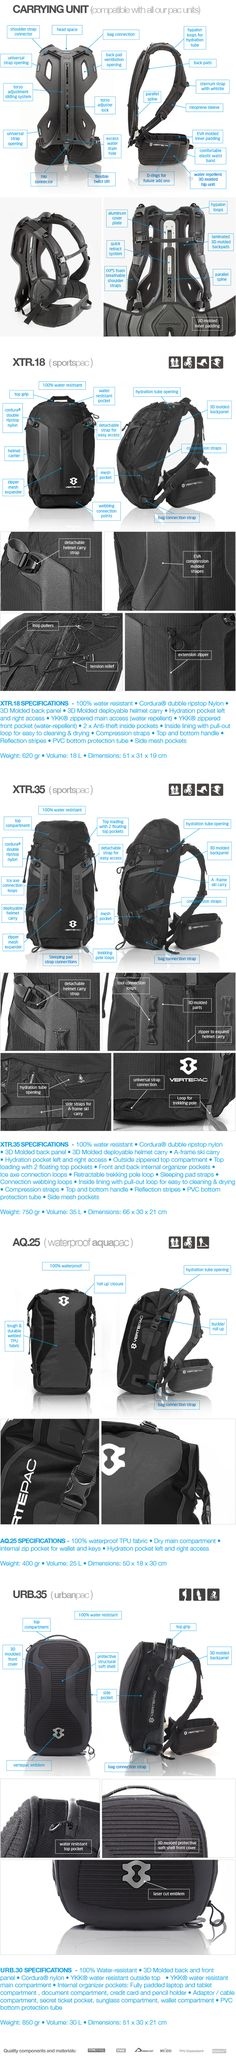 VERTEPAC: World's First Backpack With Its Own Spine. by VERTEPAC ??? Kickstarter